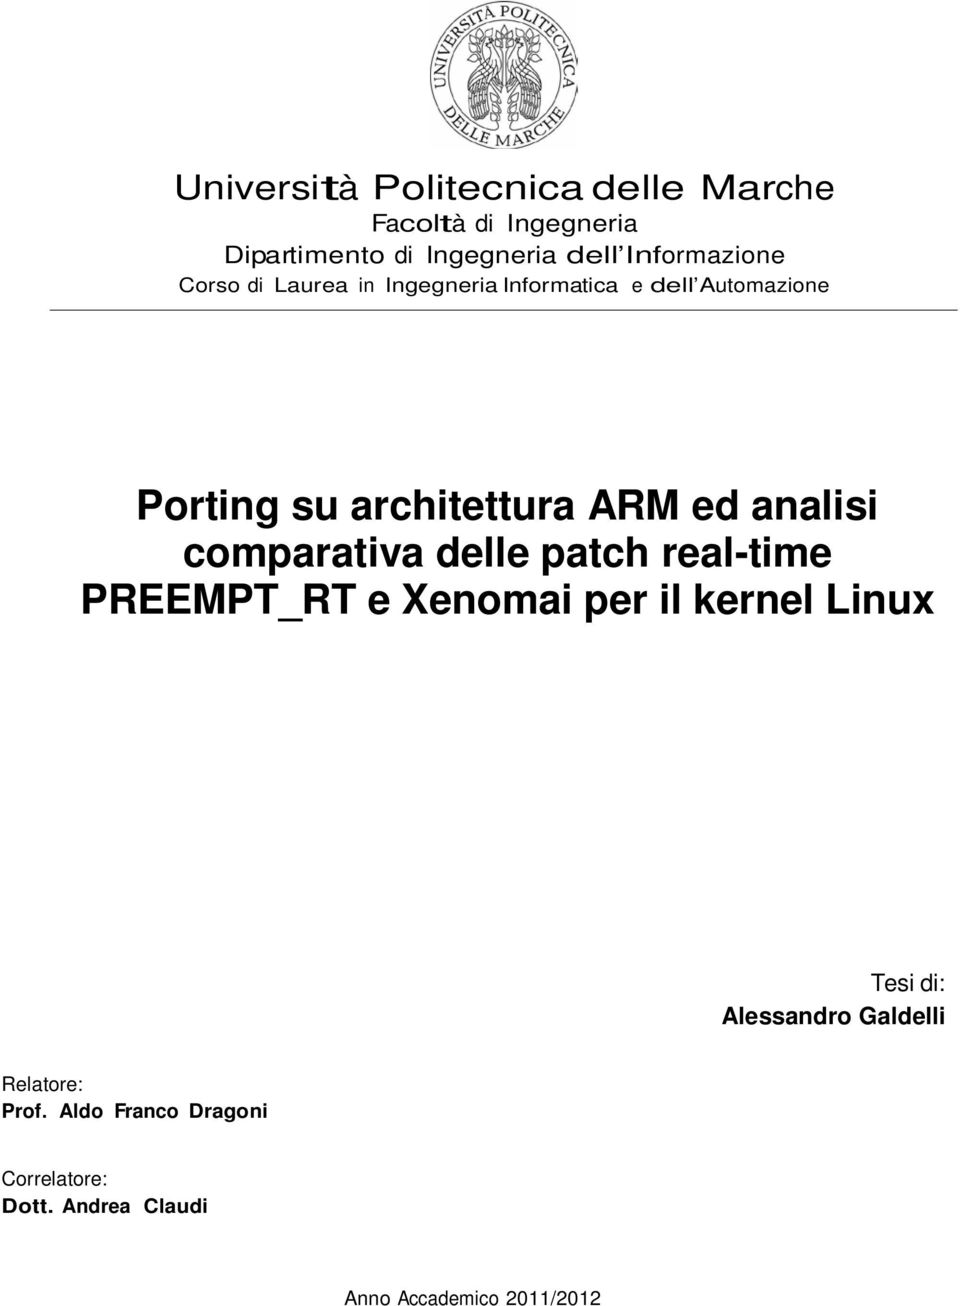 ARM ed analisi comparativa delle patch real-time PREEMPT_RT e Xenomai per il kernel Linux Tesi di: